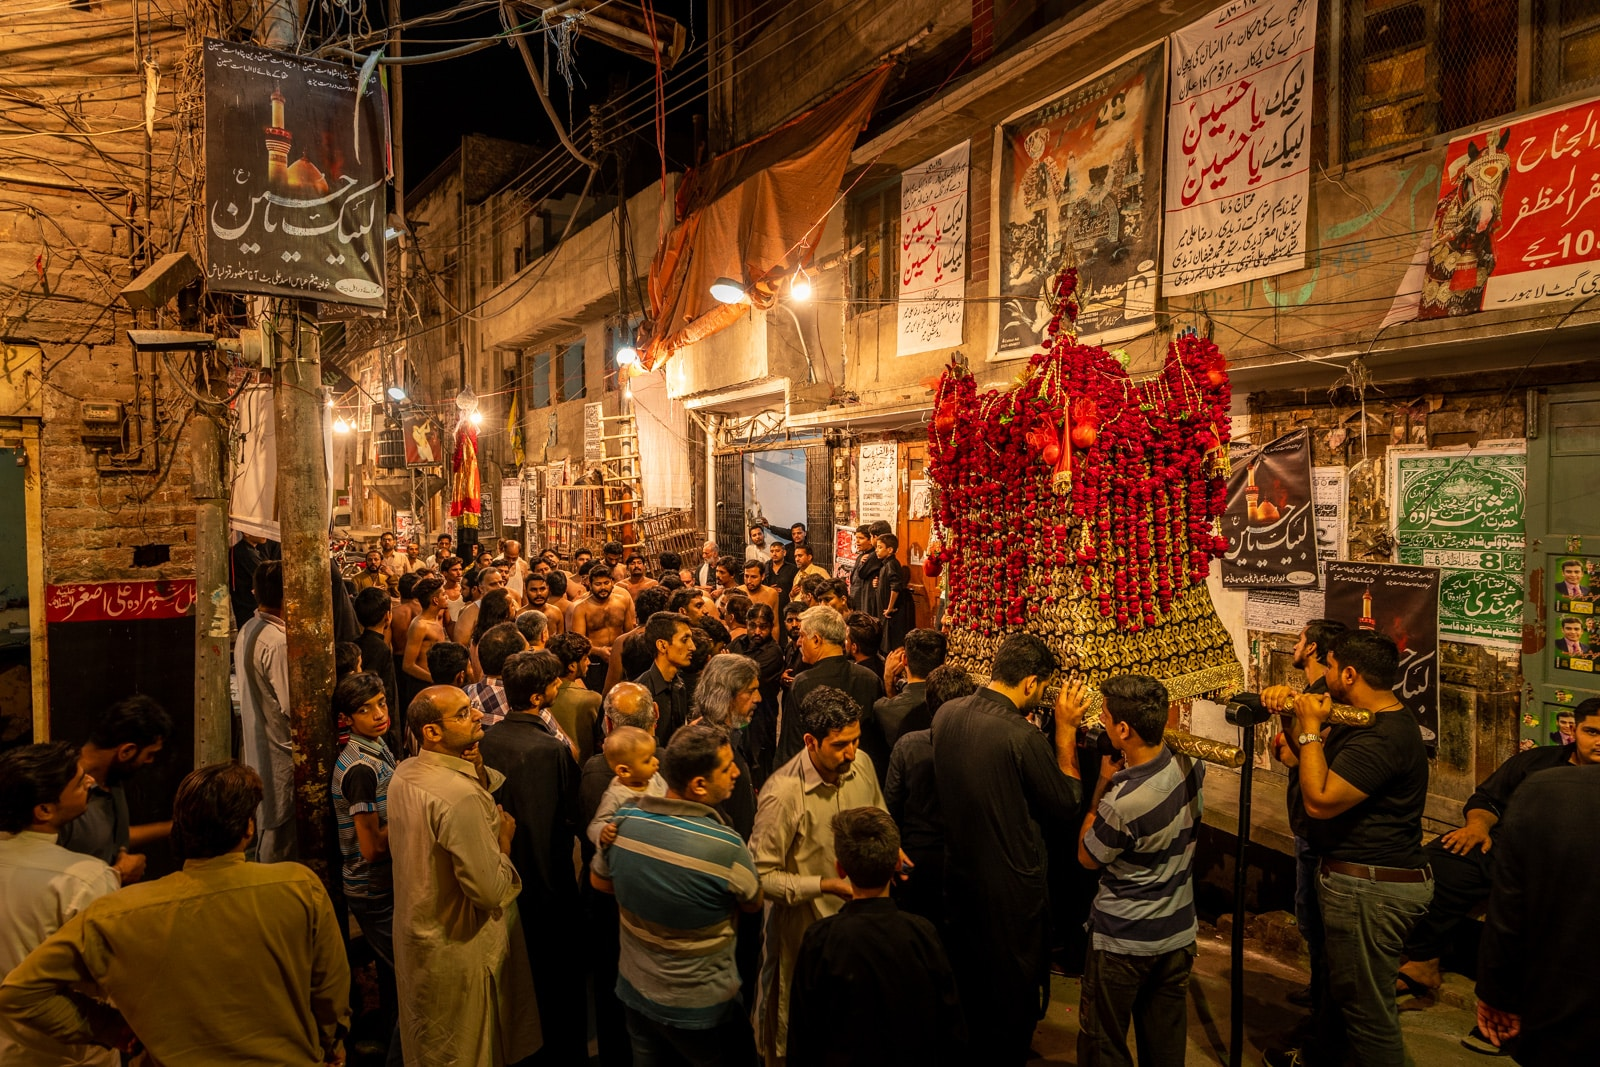 Unique things to do in Lahore, Pakistan - Shia Muharram procession at night in the Walled City of Lahore, Pakistan